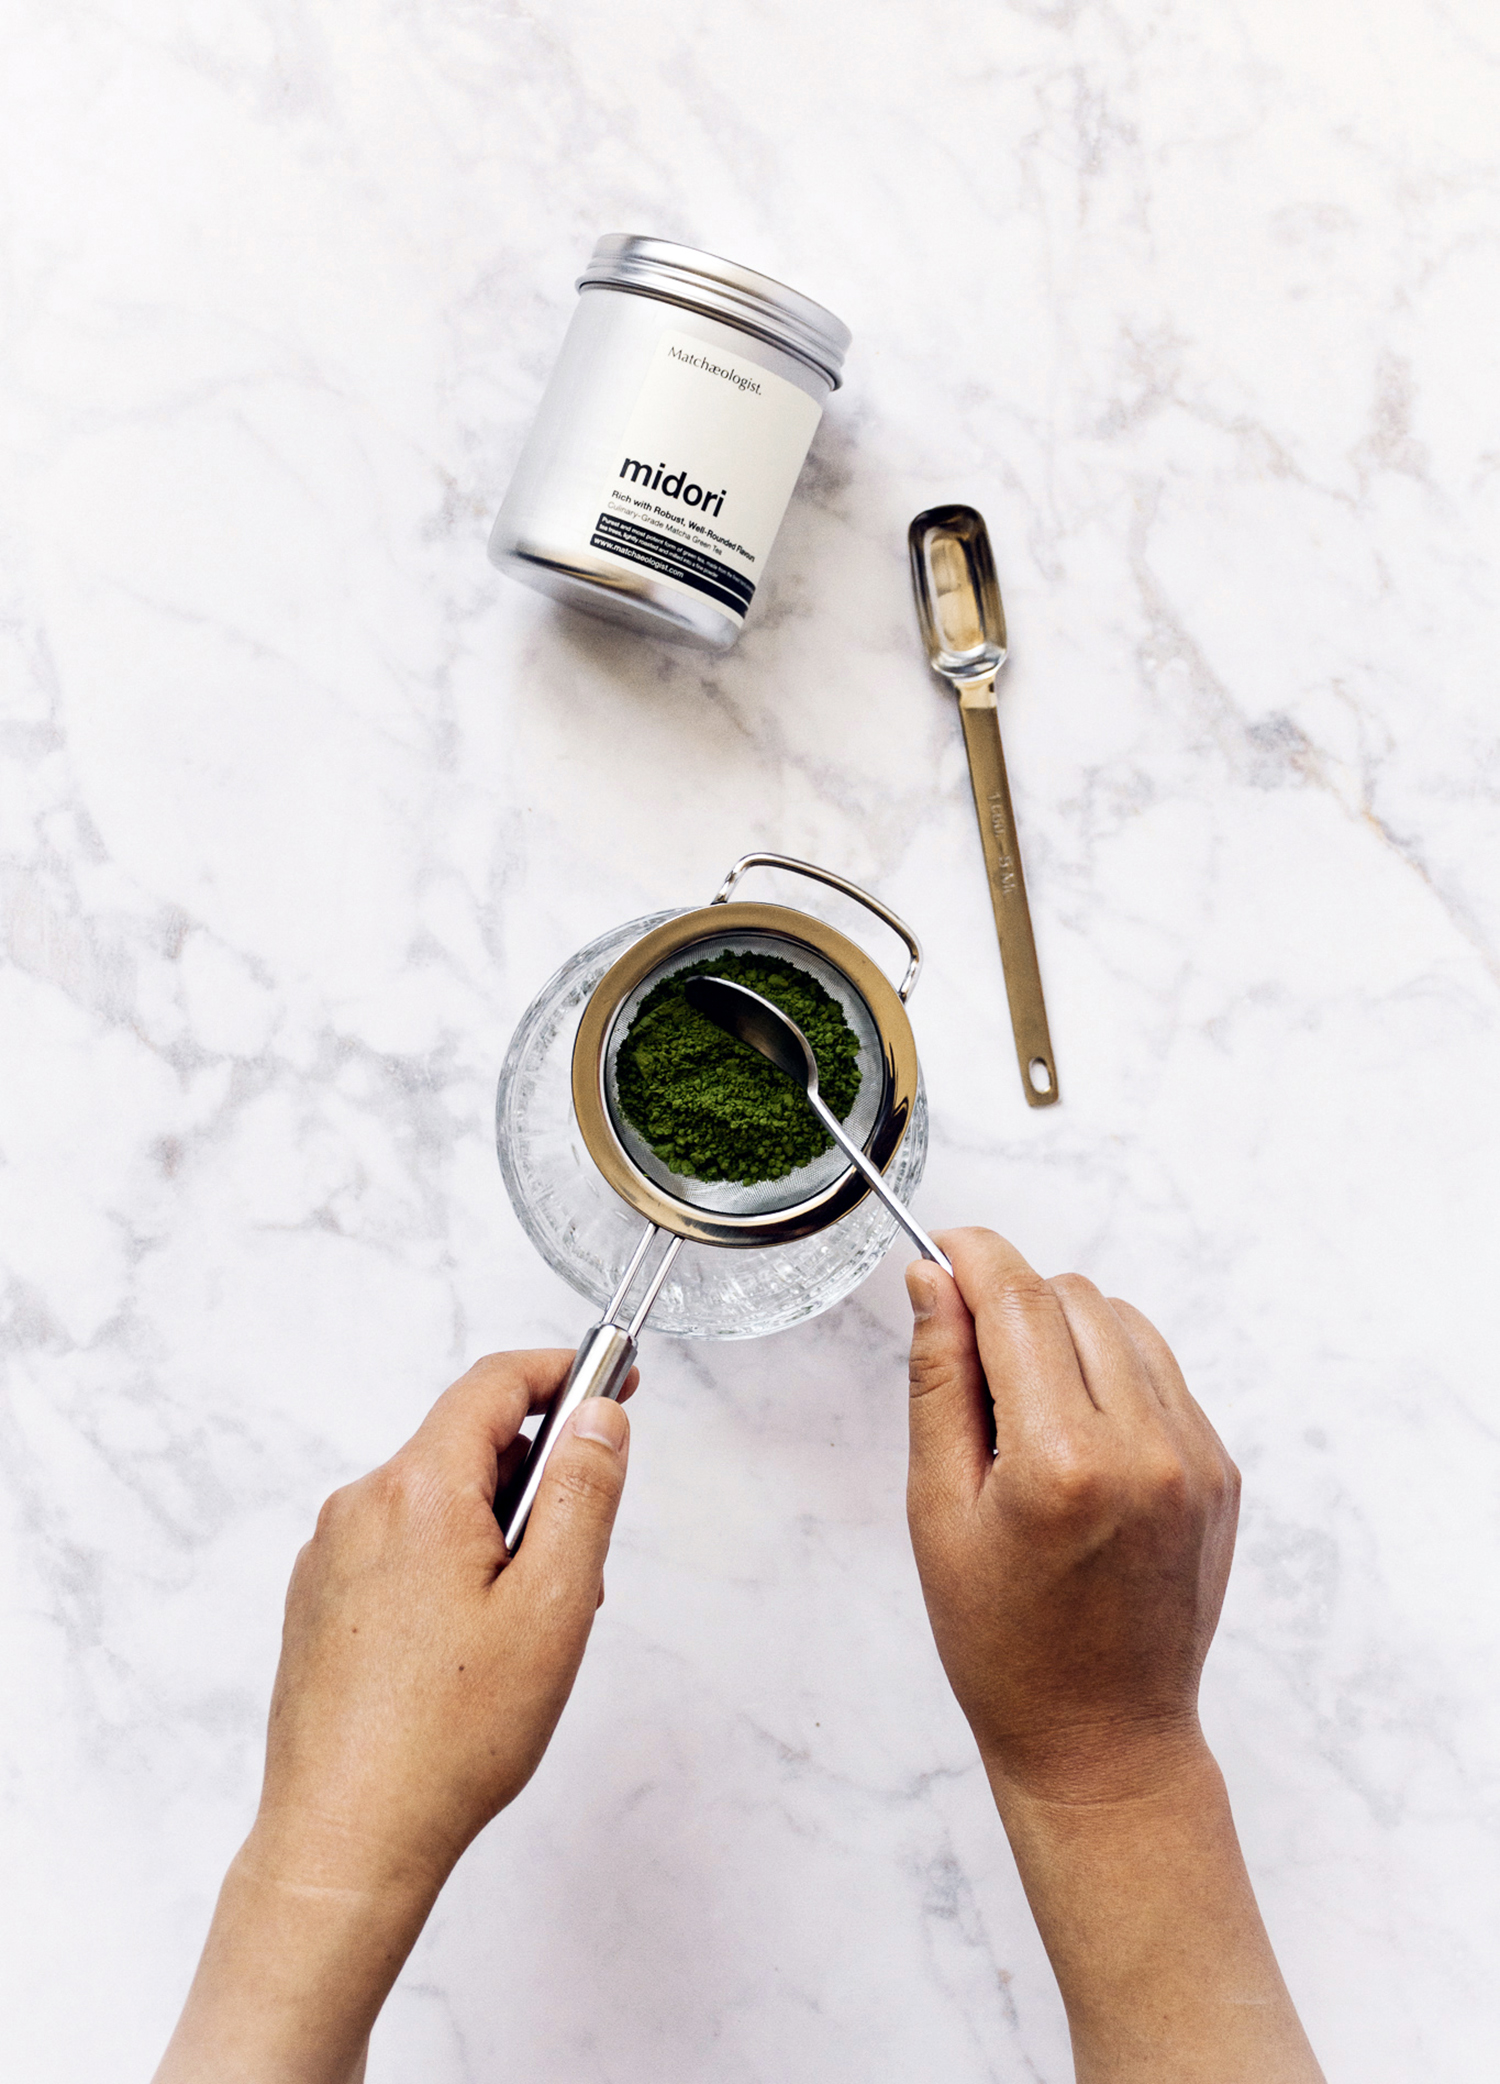 Sifting matcha is my favorite thing.